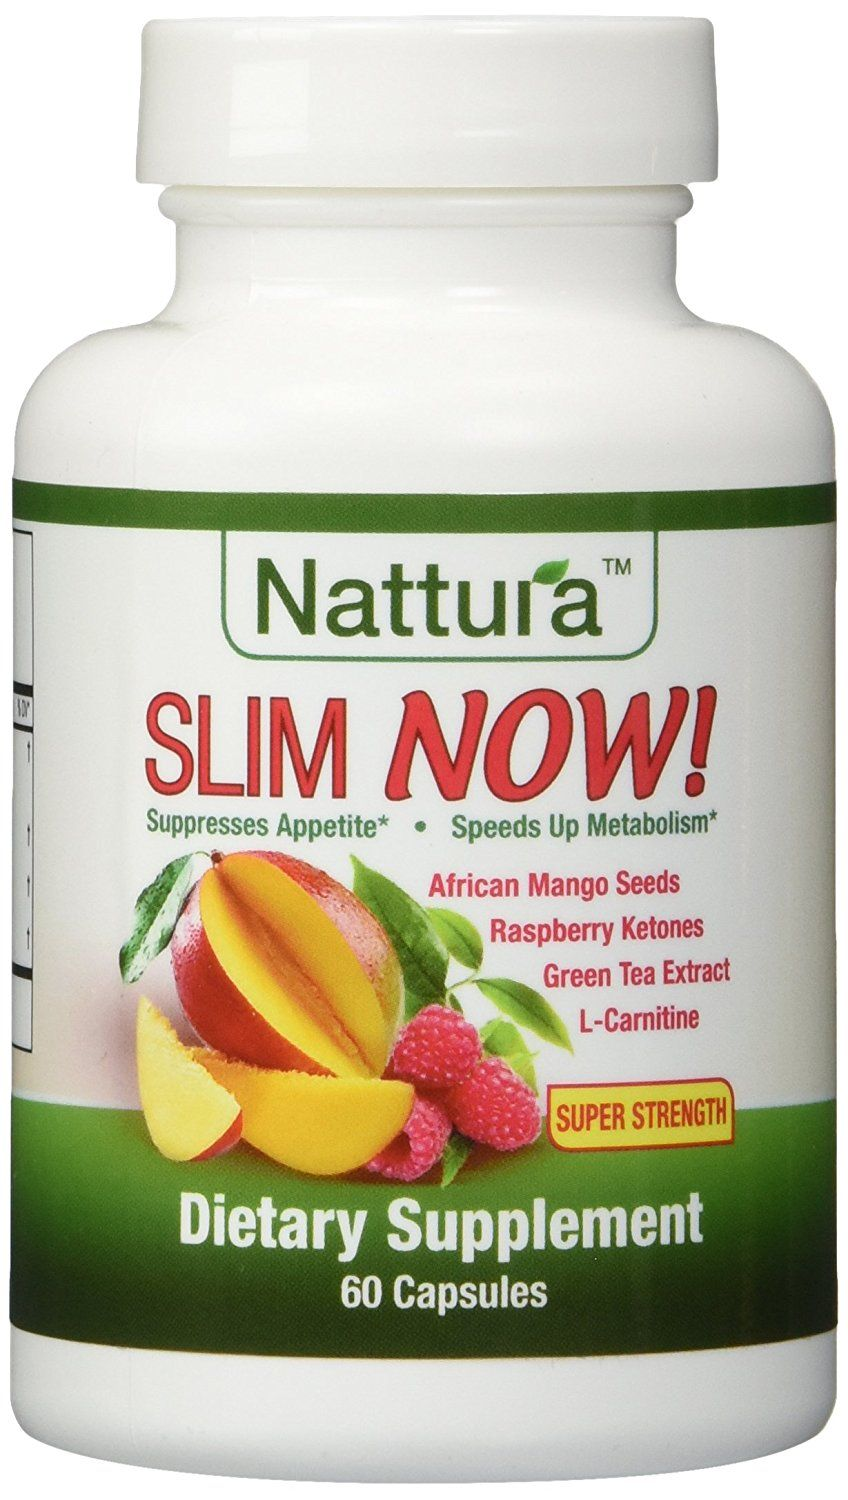 Slim Now Weight Loss Supplement With African Mango Seed Extract Ultimate Nutrition Ultra Ripped Faf 90 Caps Capsul Raspberry Ketones Green Tea Super Strength 60 Capsules Review More Details Here